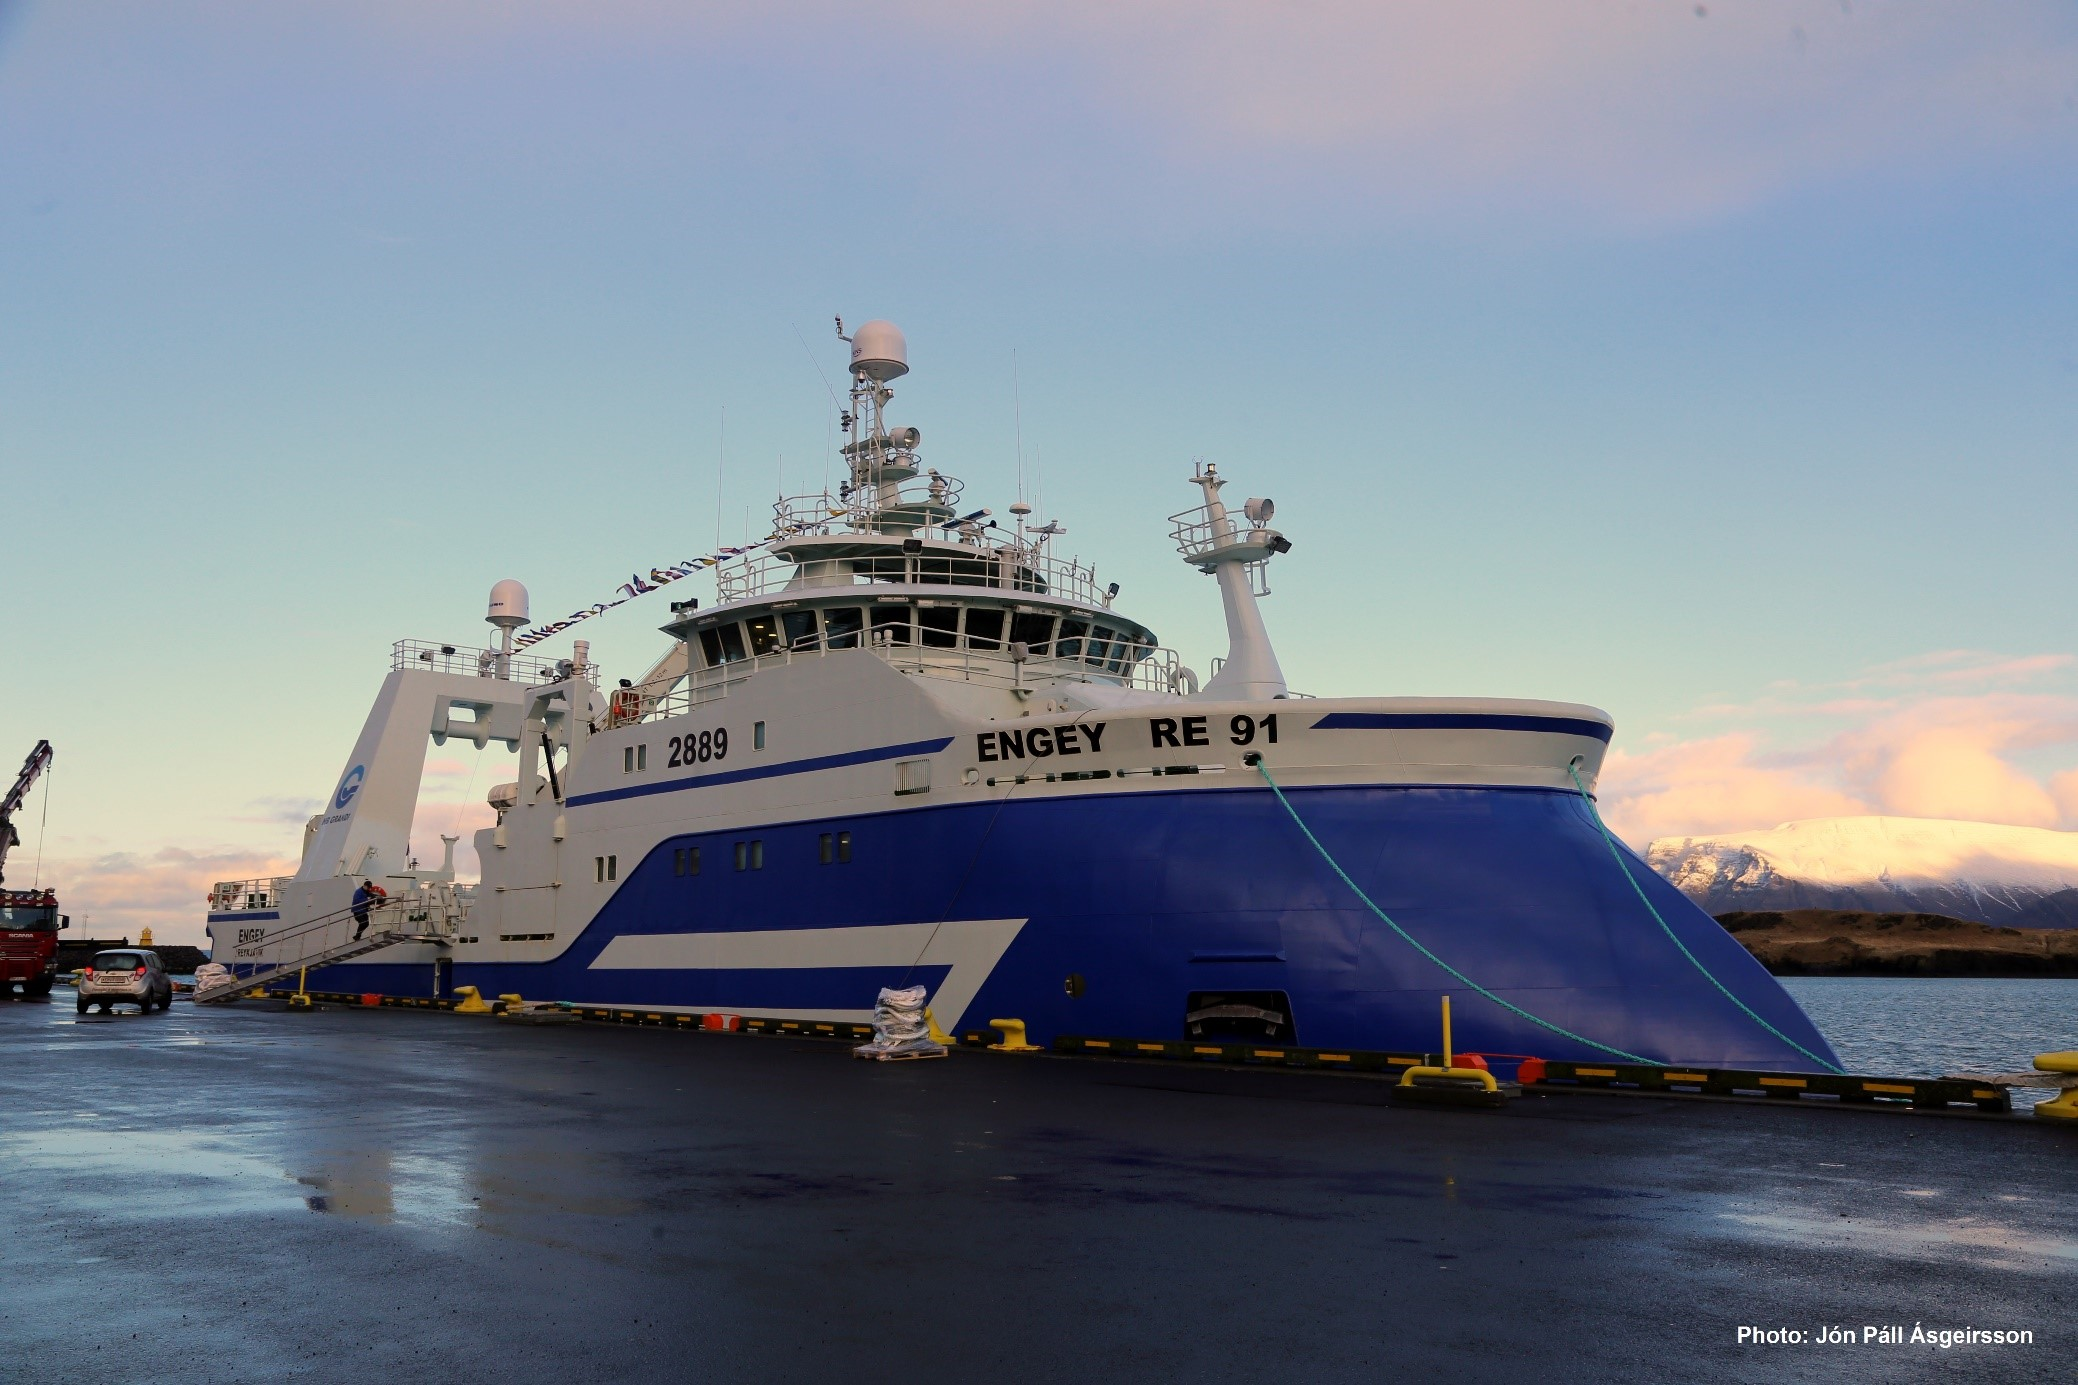 Engey - The World 's first trawler with unmanned fish hold.